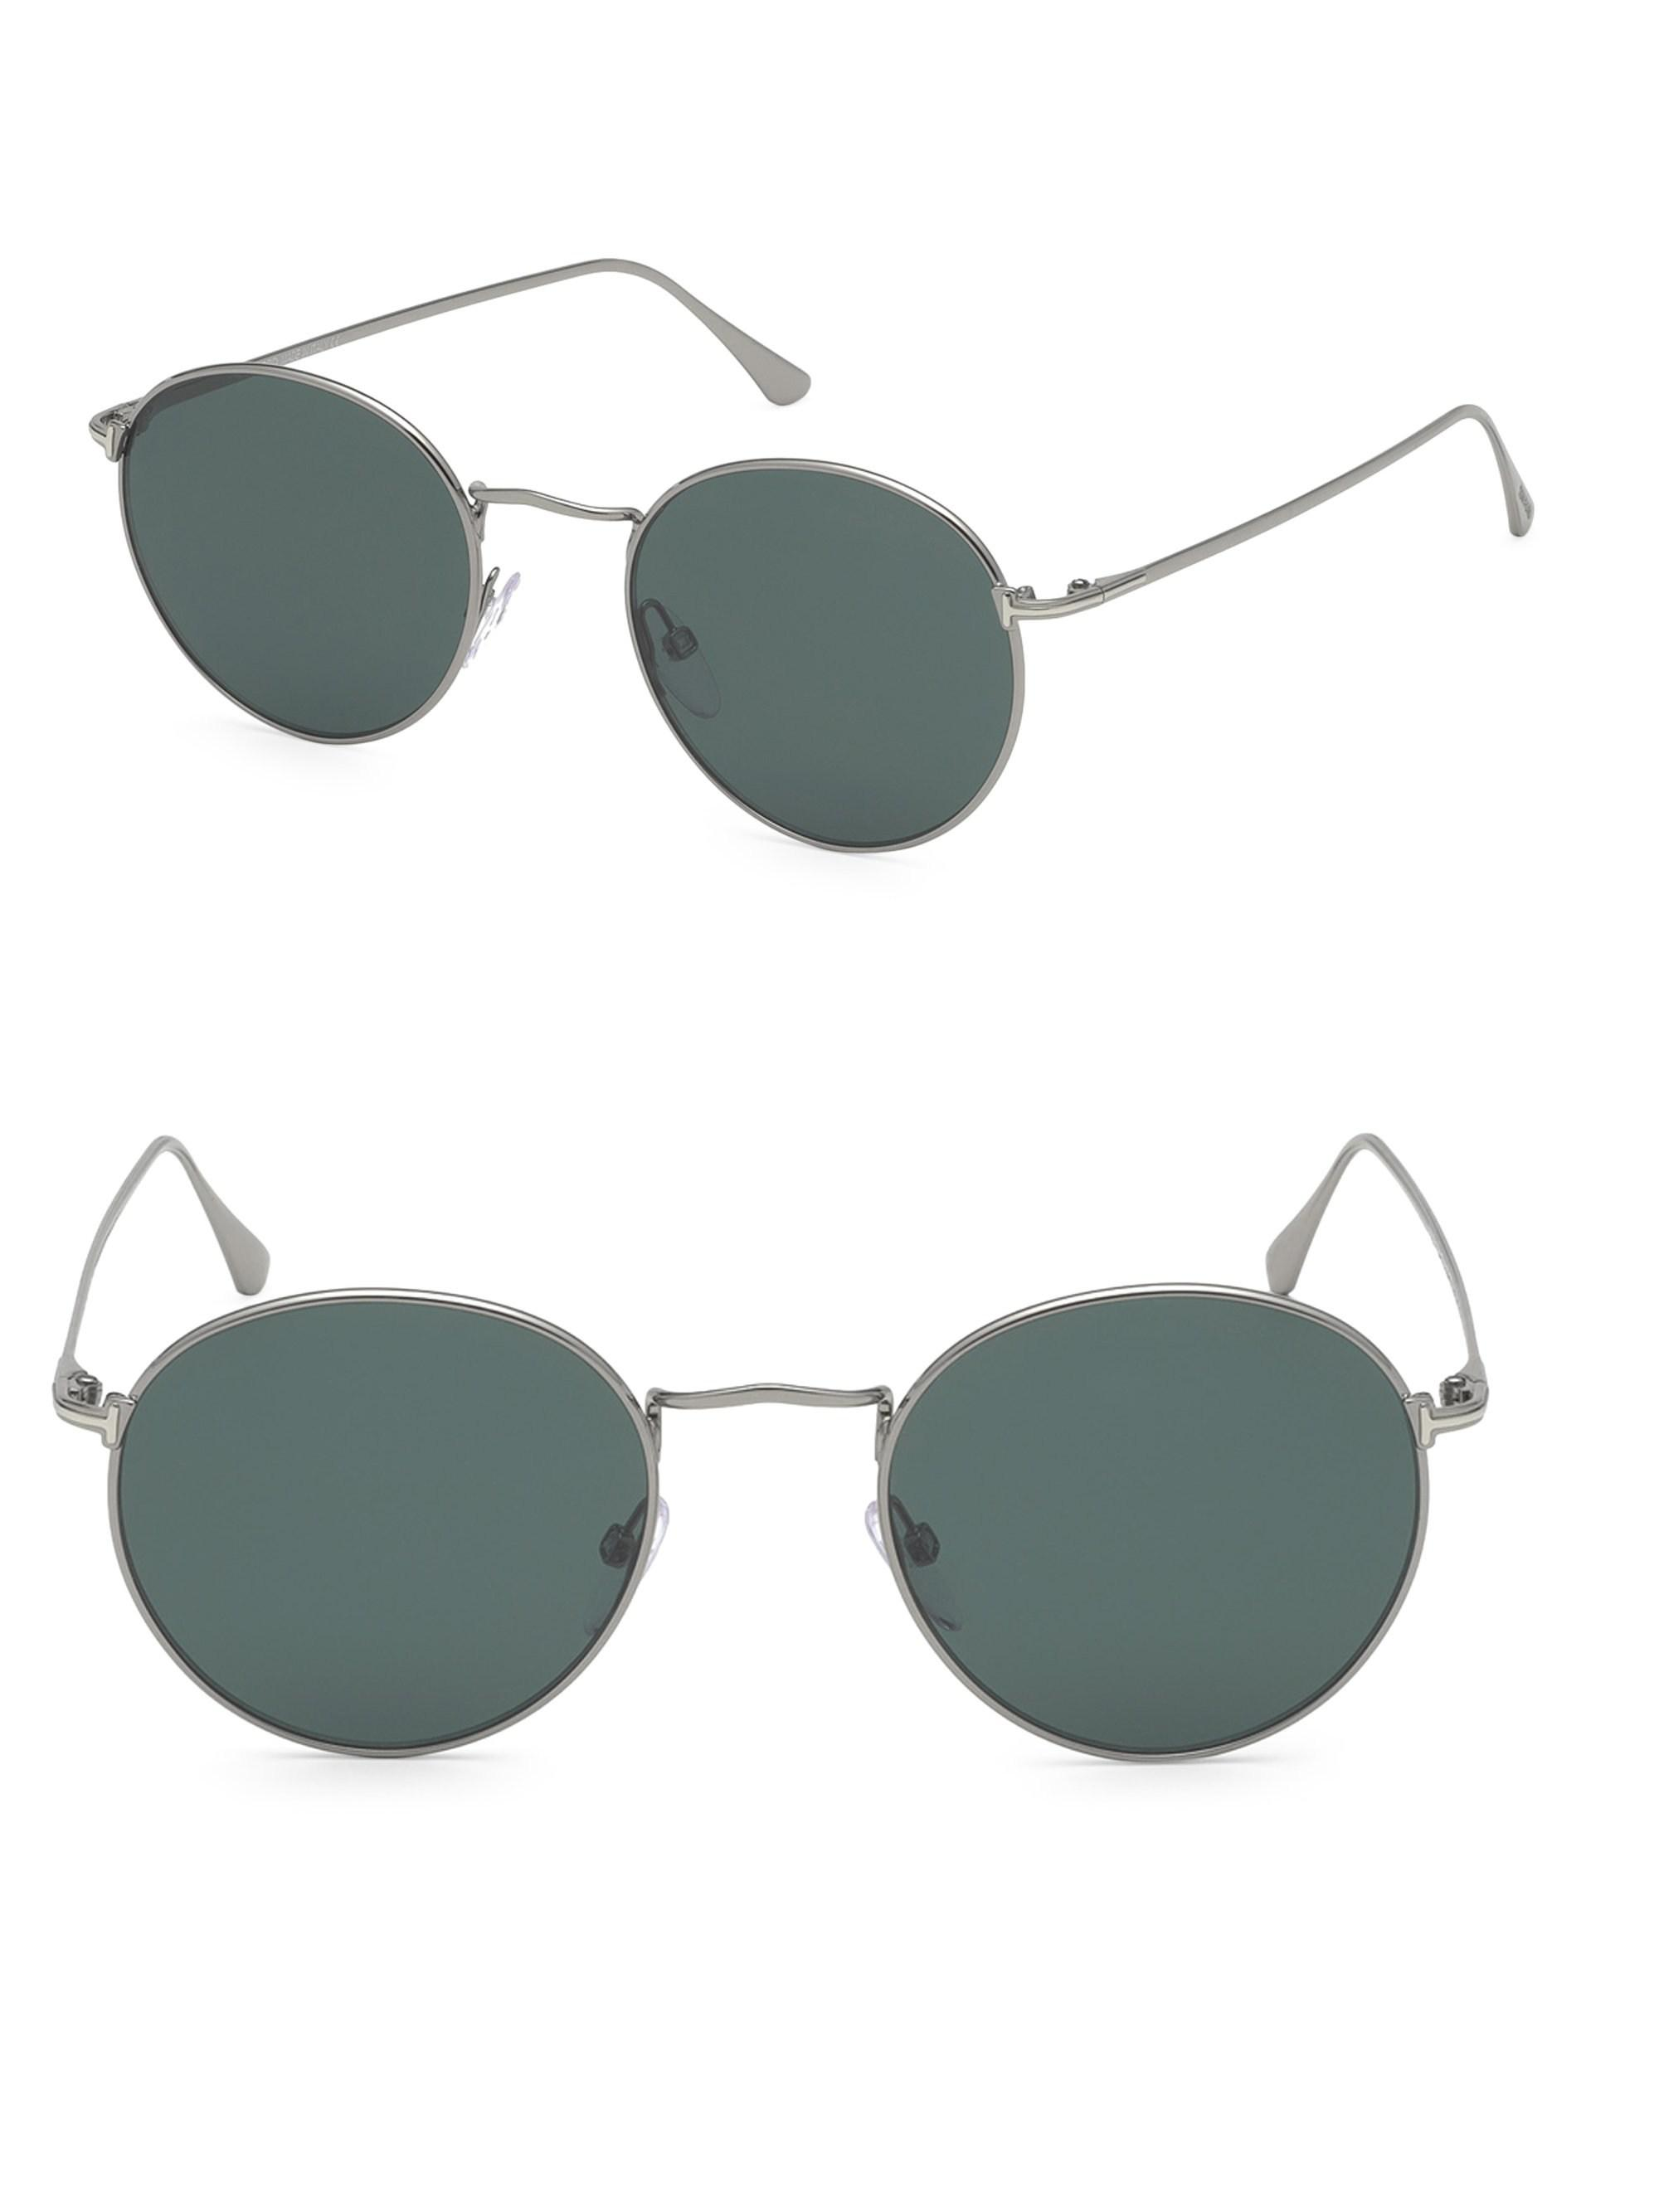 0ceb18941d6 Tom Ford 52mm Ryan Round Sunglasses in Gray for Men - Lyst